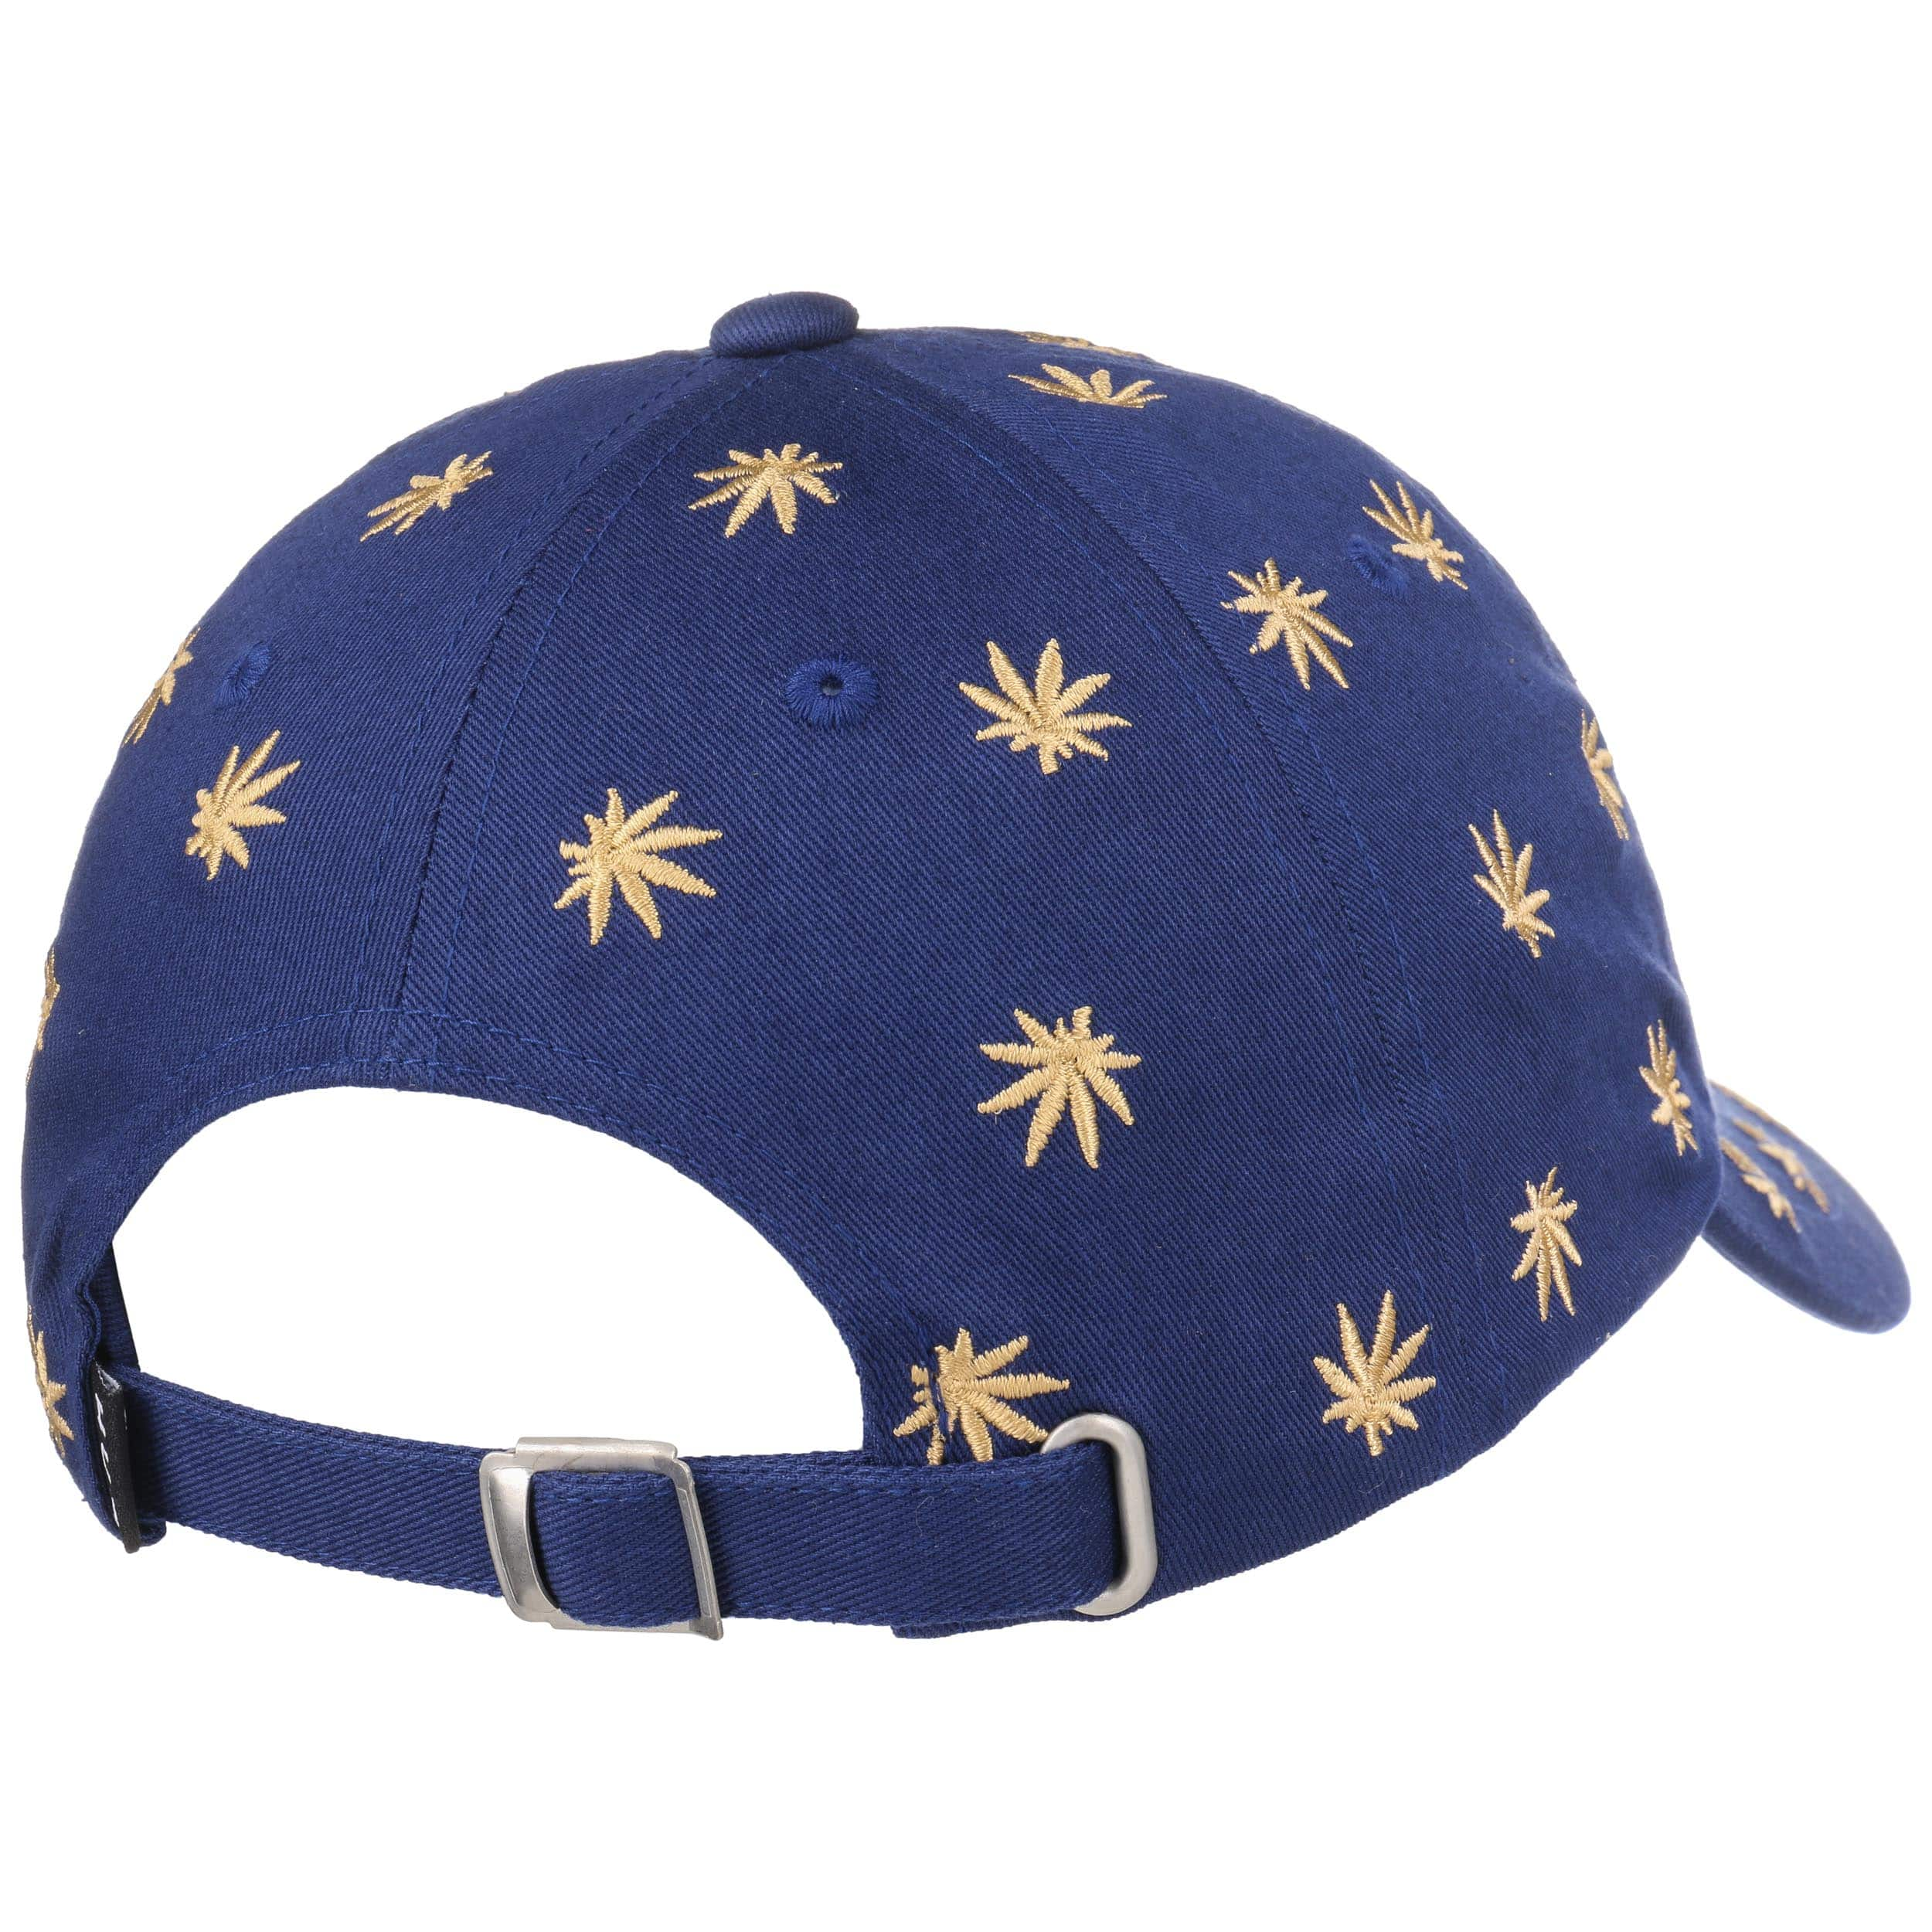 380e230284b556 ... Allover Dad Hat Strapback Cap by HUF - navy 3 ...